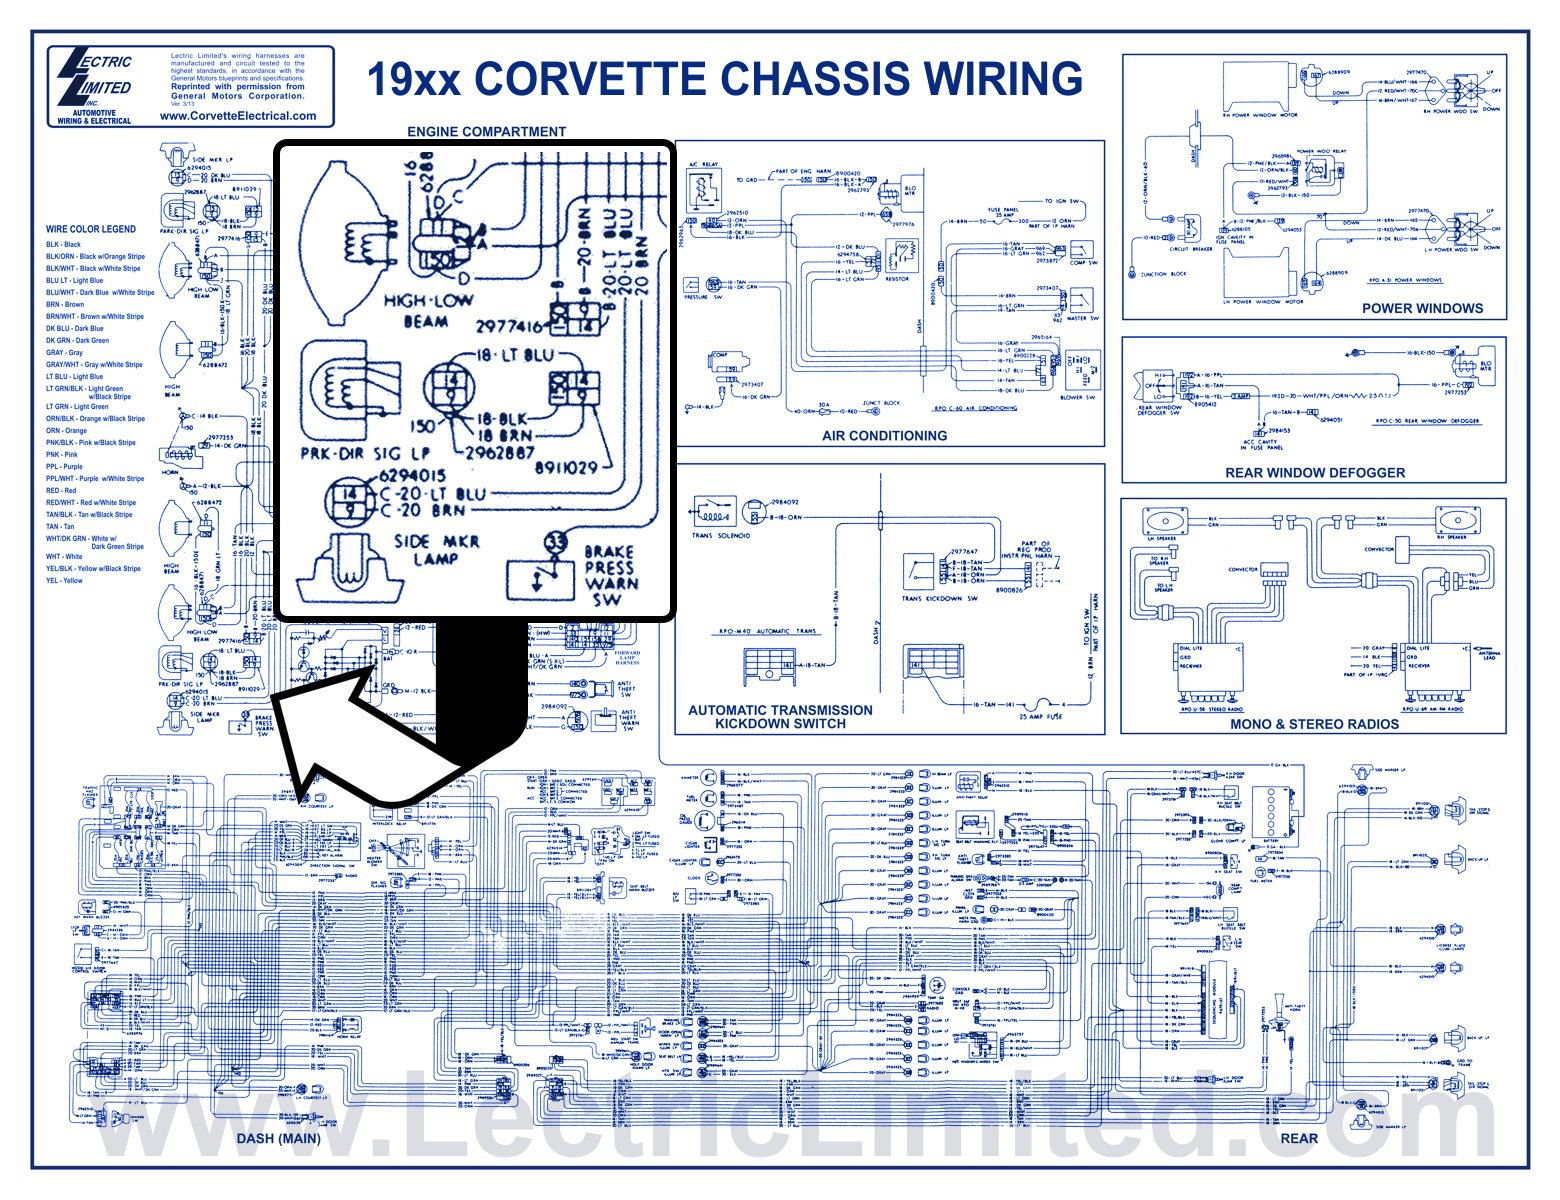 1974 Camaro Wire Diagram Wiring Library 80 1973 1980 Corvette Schematic